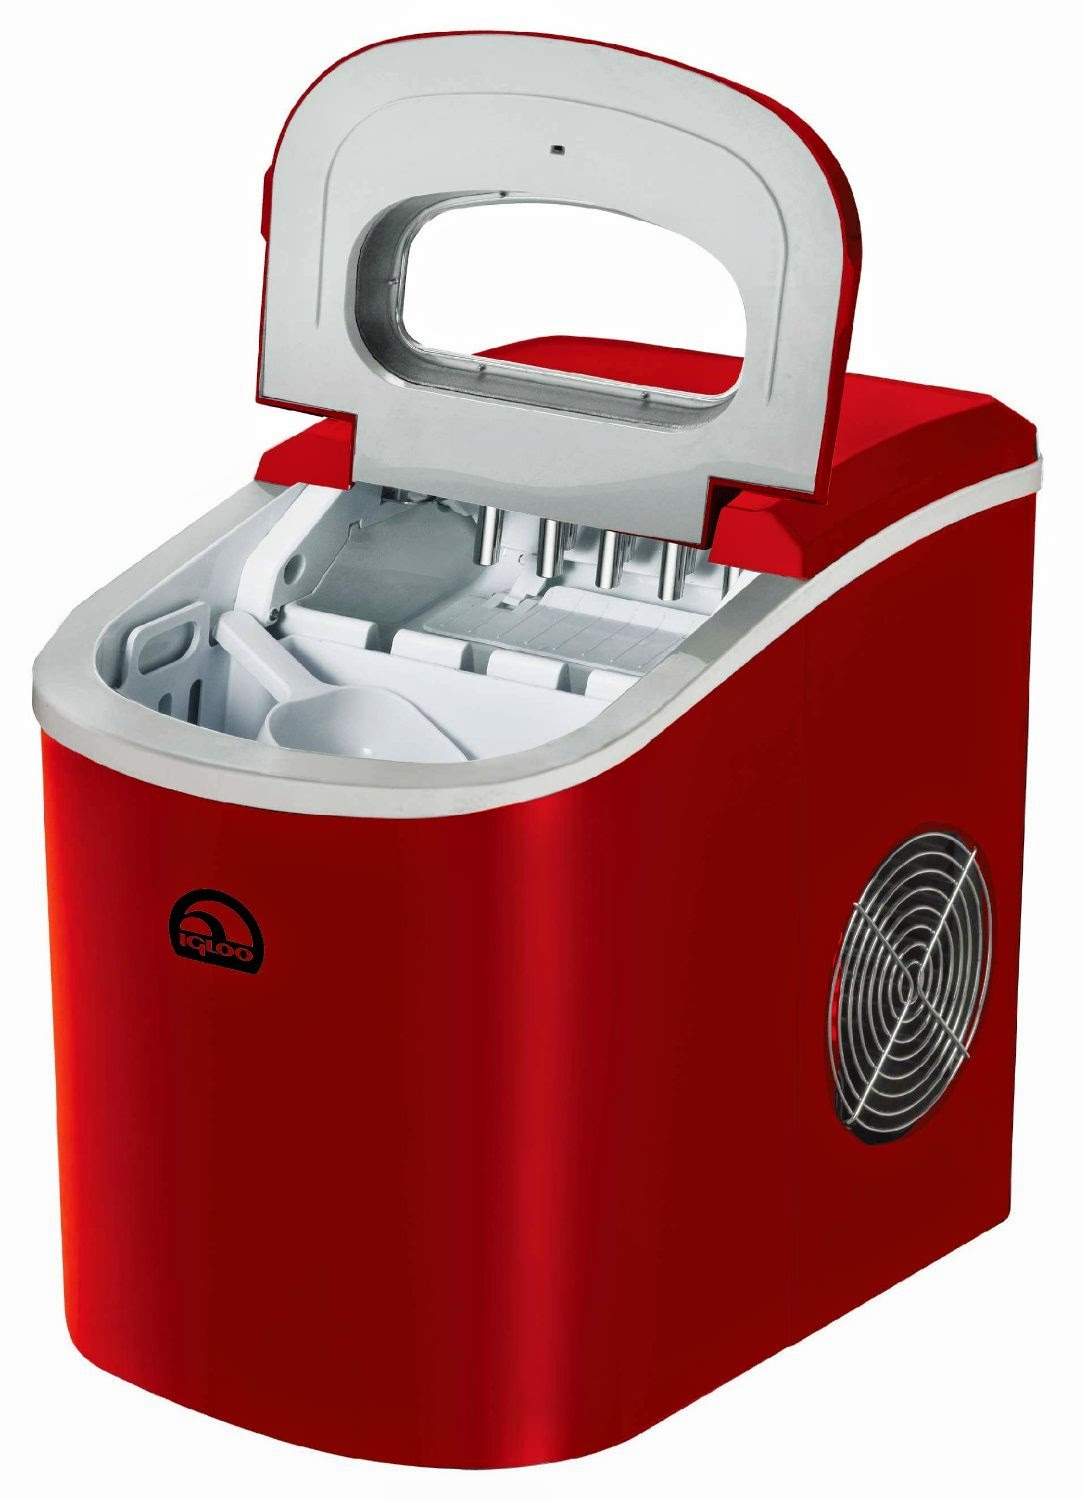 Andrew James Compact Countertop Ice Maker : igloo portable countertop ice maker every countertop ice maker have a ...